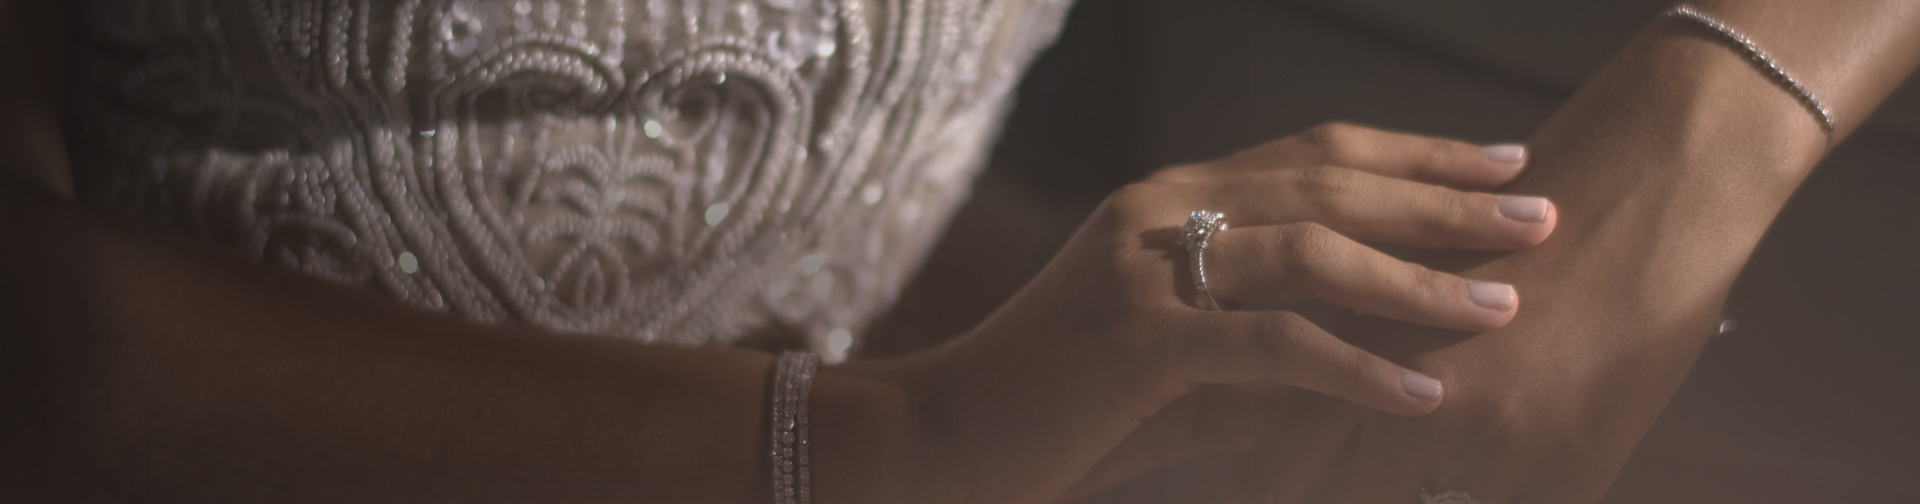 Woman wearing luxury diamond jewelry including multiple diamond tennis bracelets and diamond engagement ring.